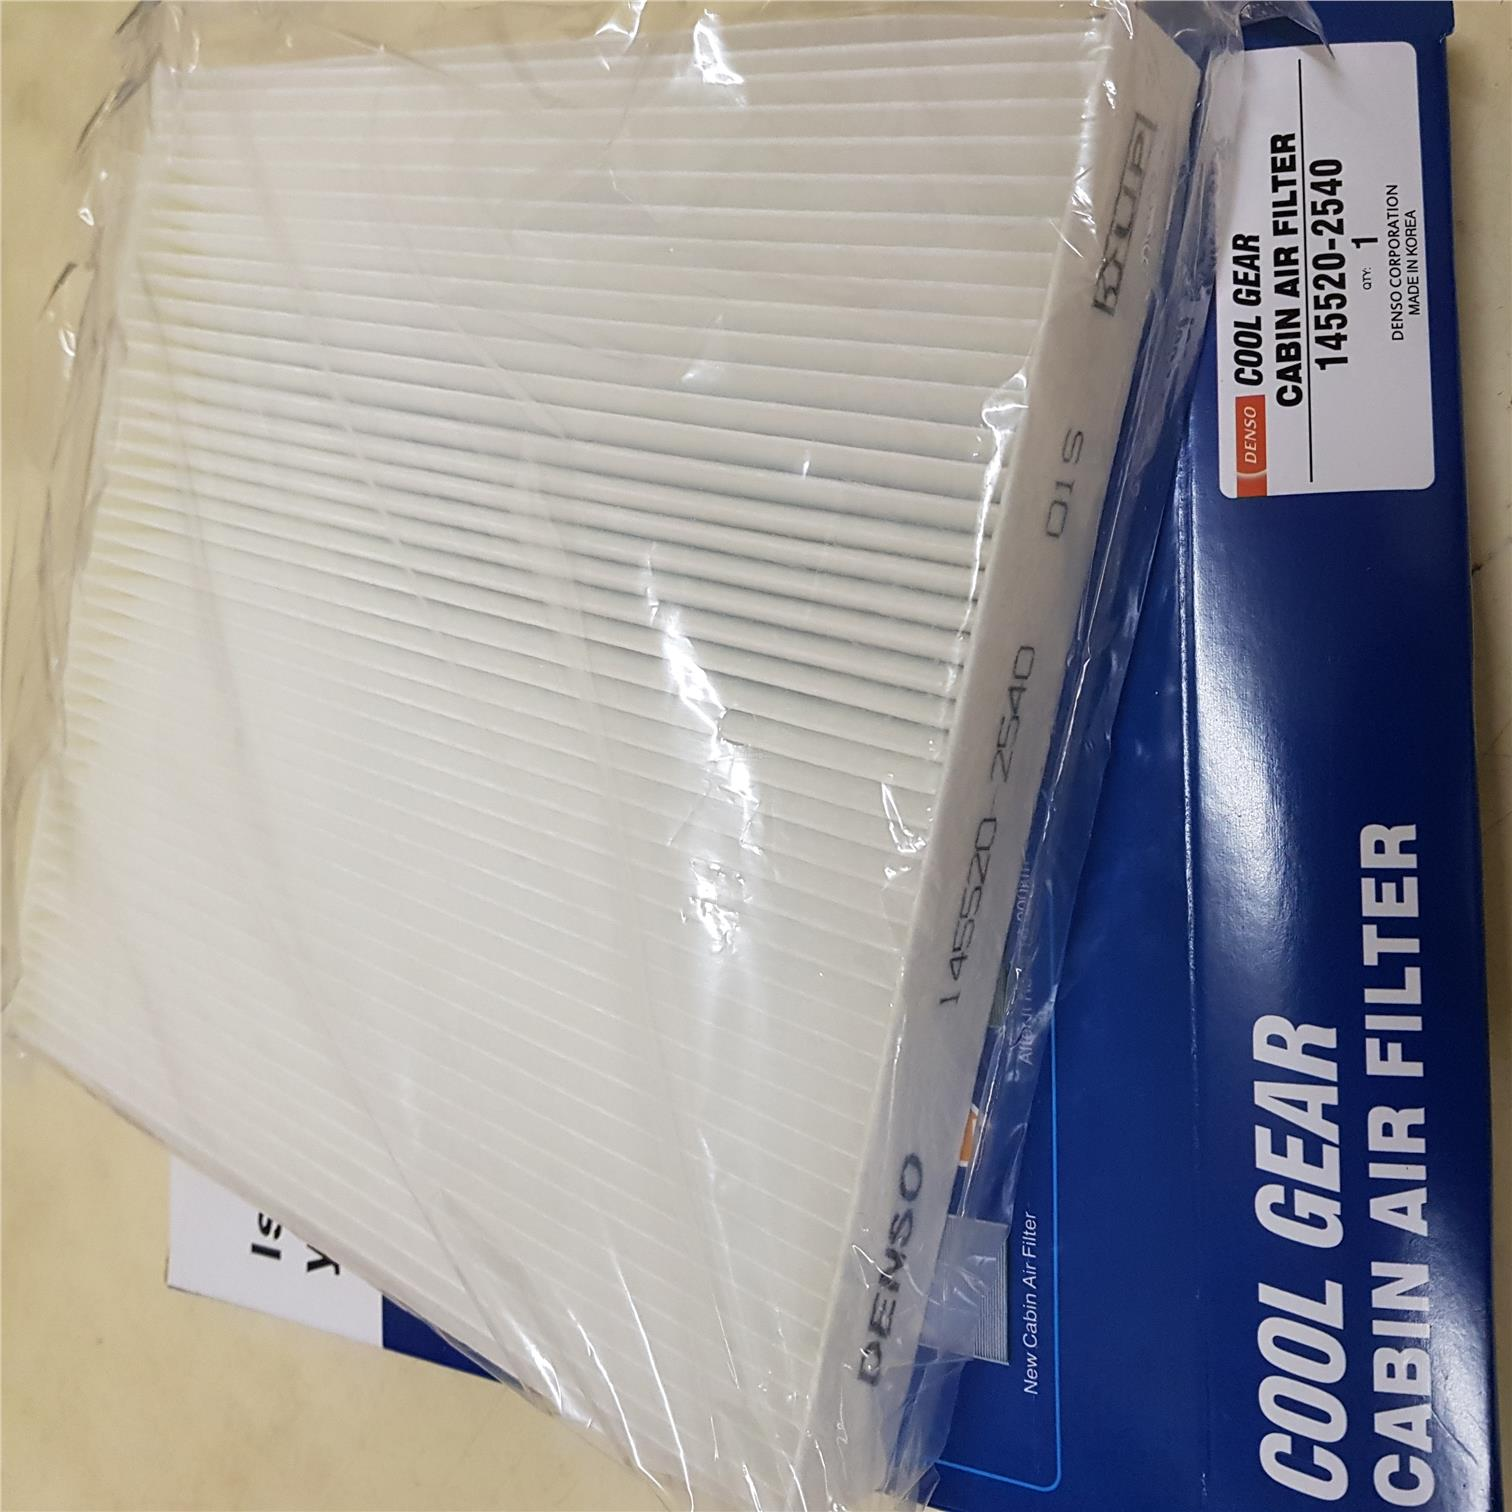 watch youtube toyota replacement crv cabin air filter honda cabins